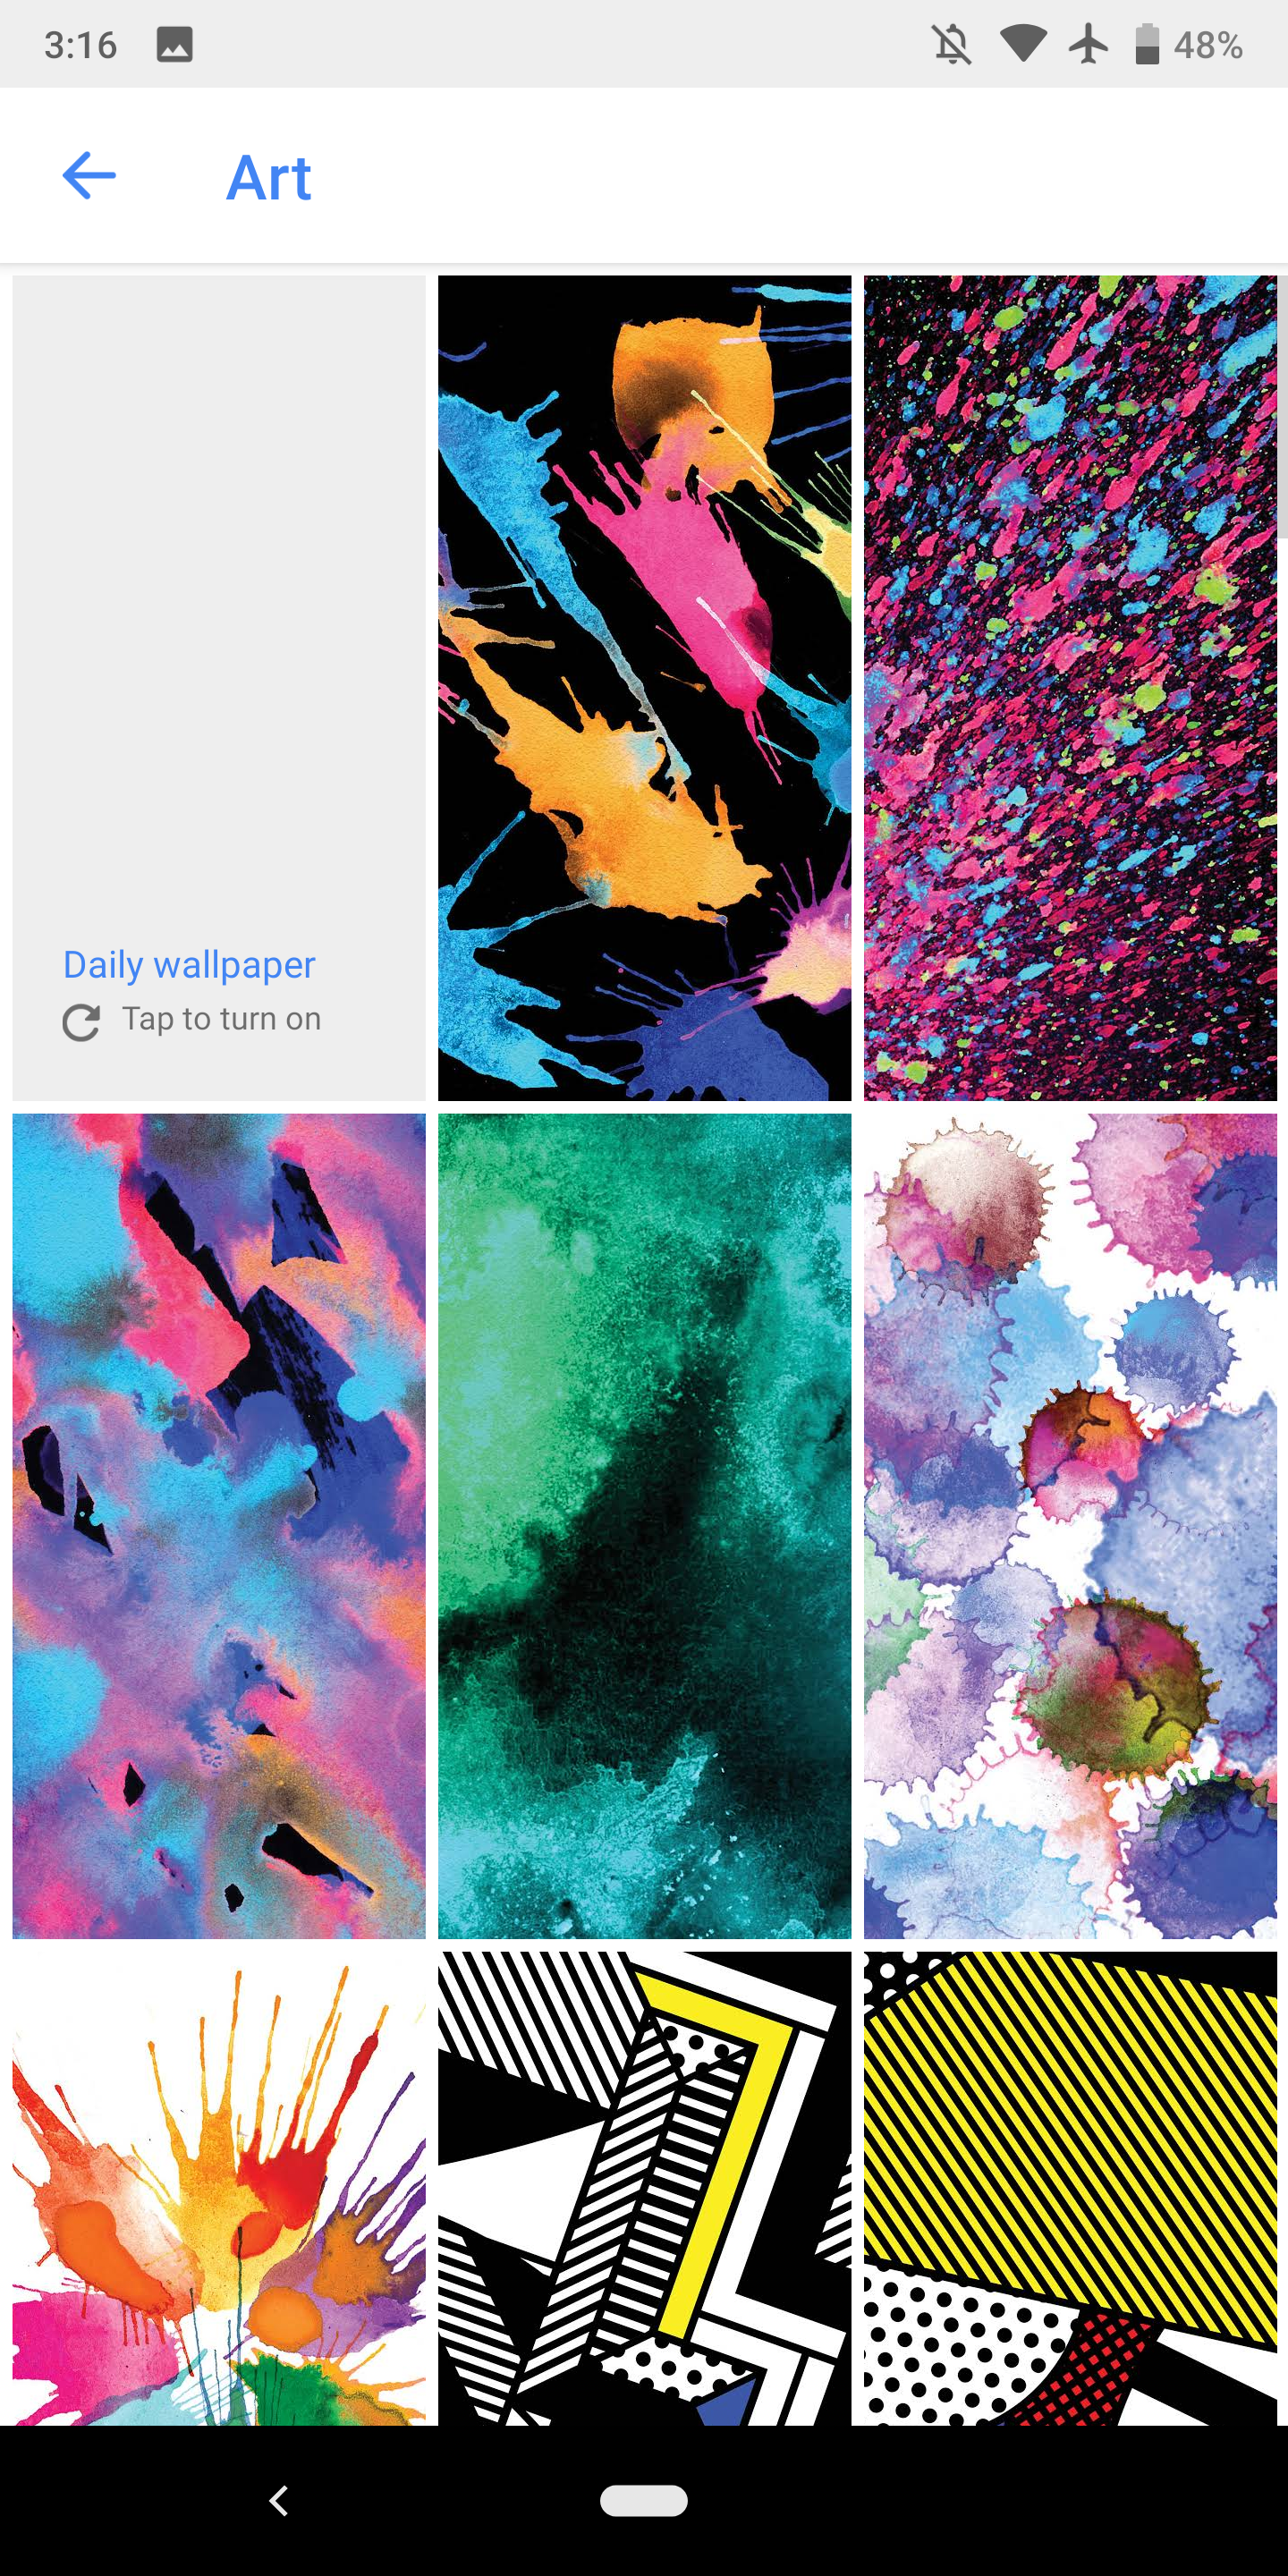 new google wallpapers include more art earth life images 9to5google